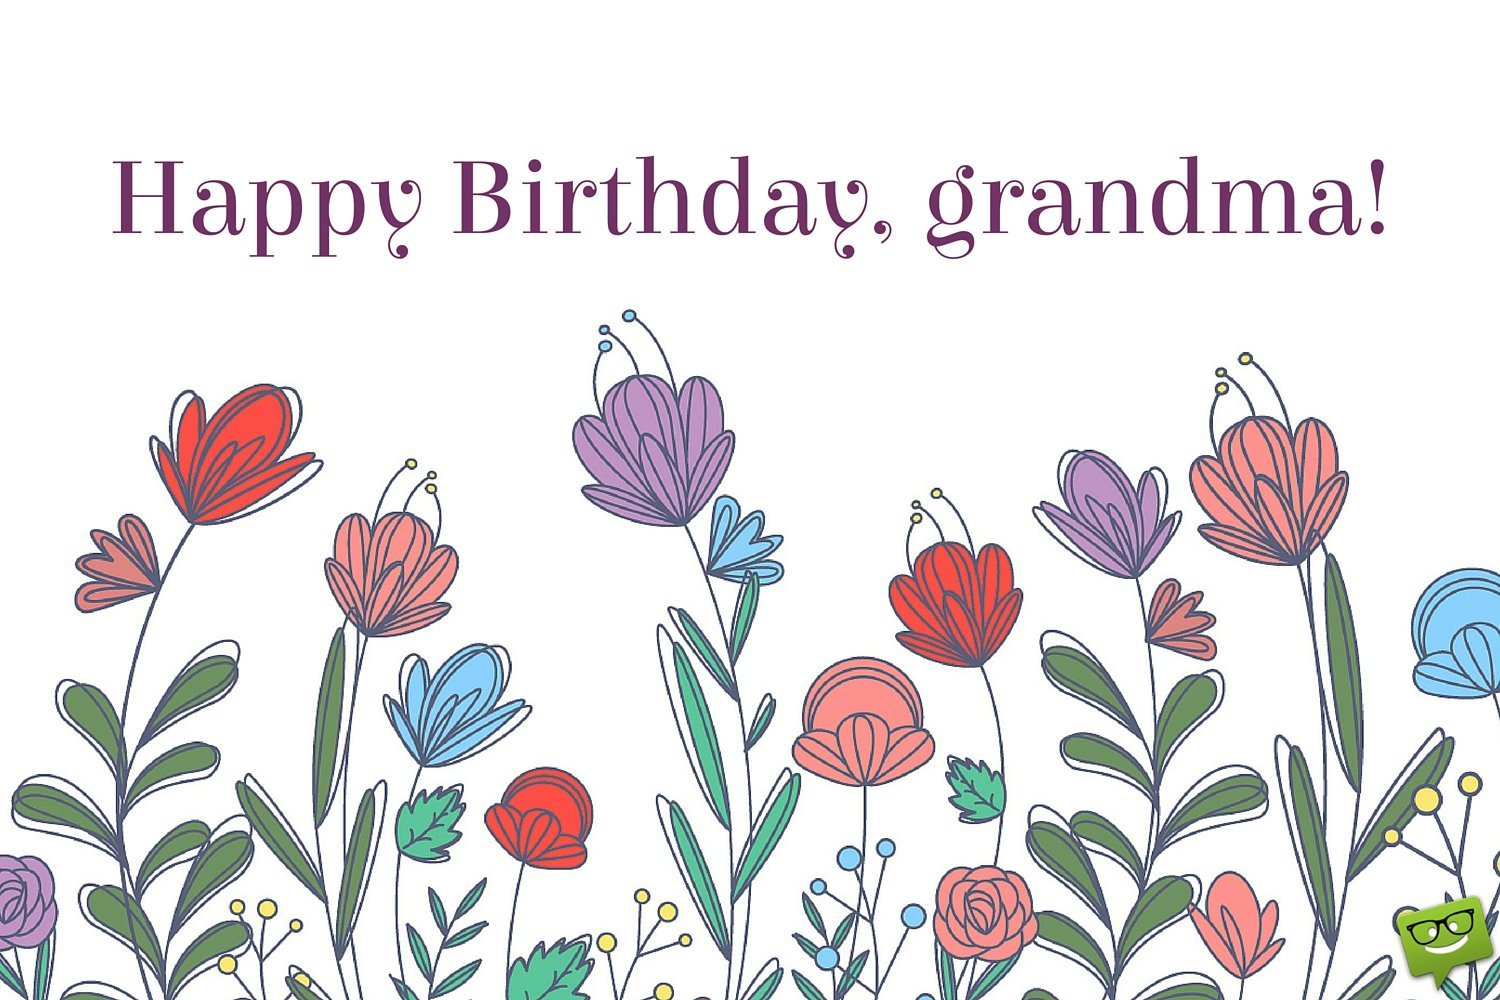 What to give a grandmother birthday